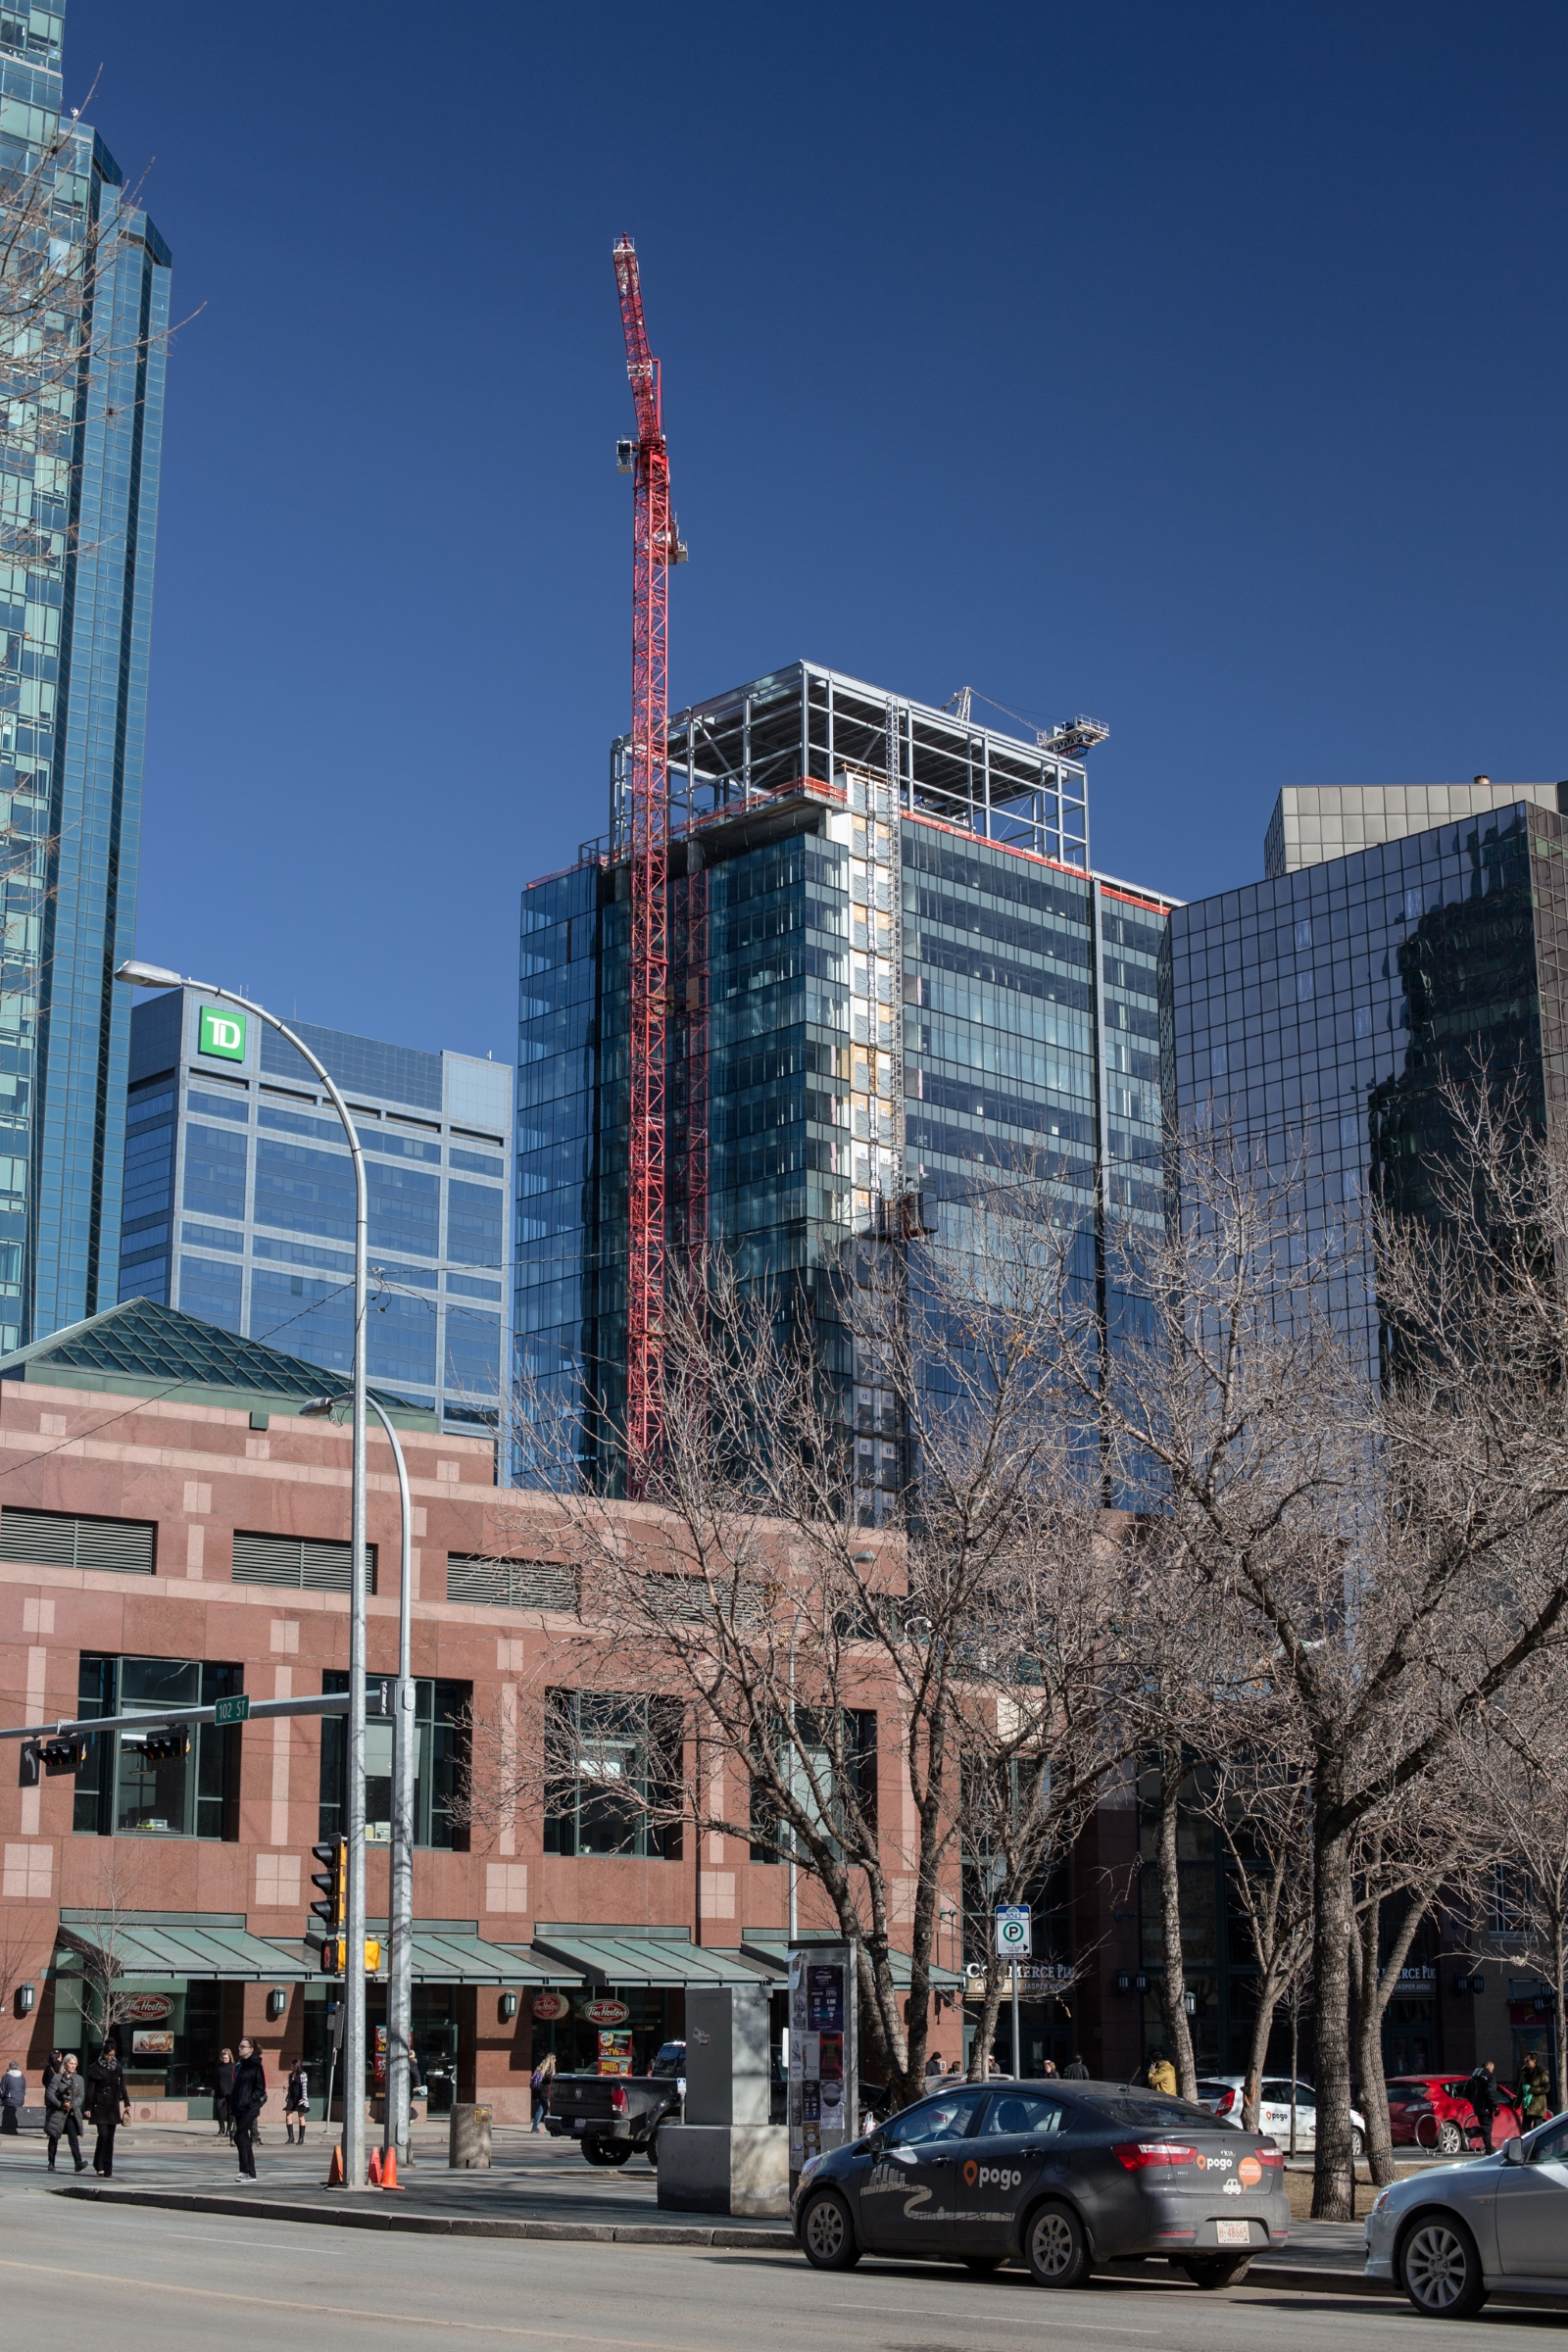 Construction sites in your city/town - Page 362 - SkyscraperPage Forum